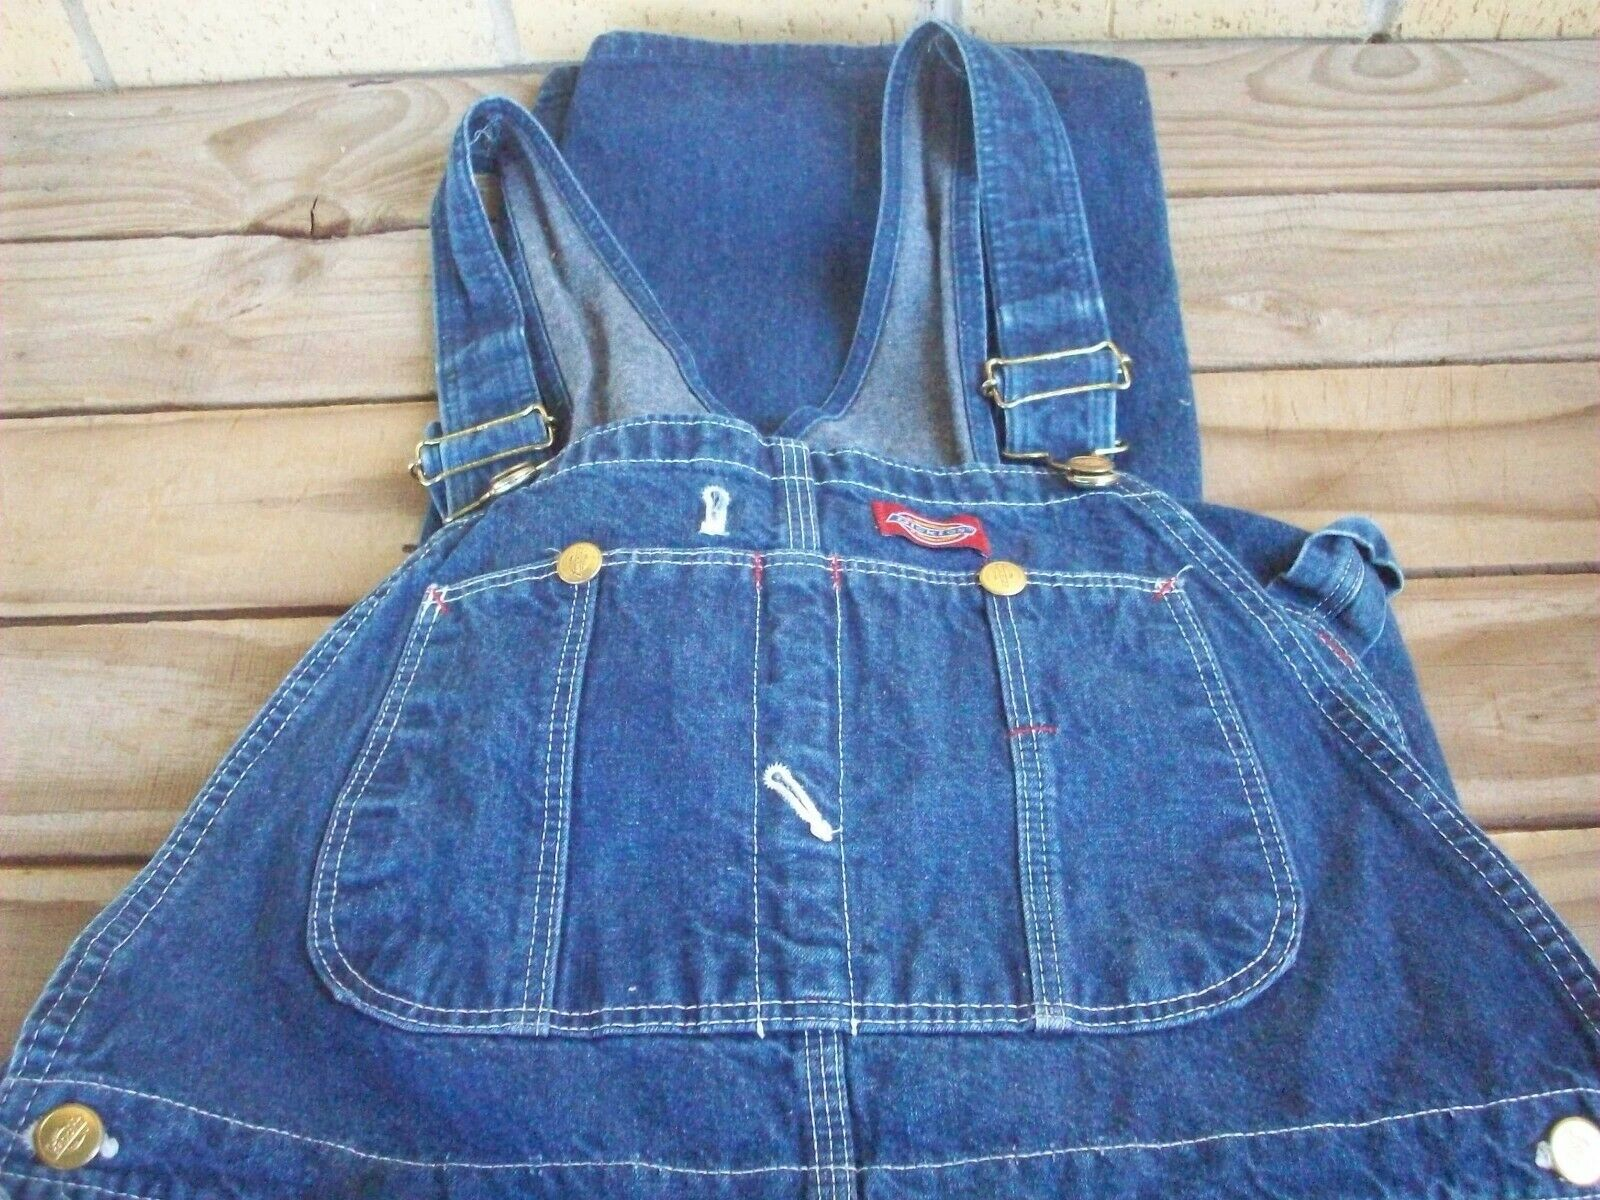 Vintage Dickies Overalls Size 34x34 - image 1